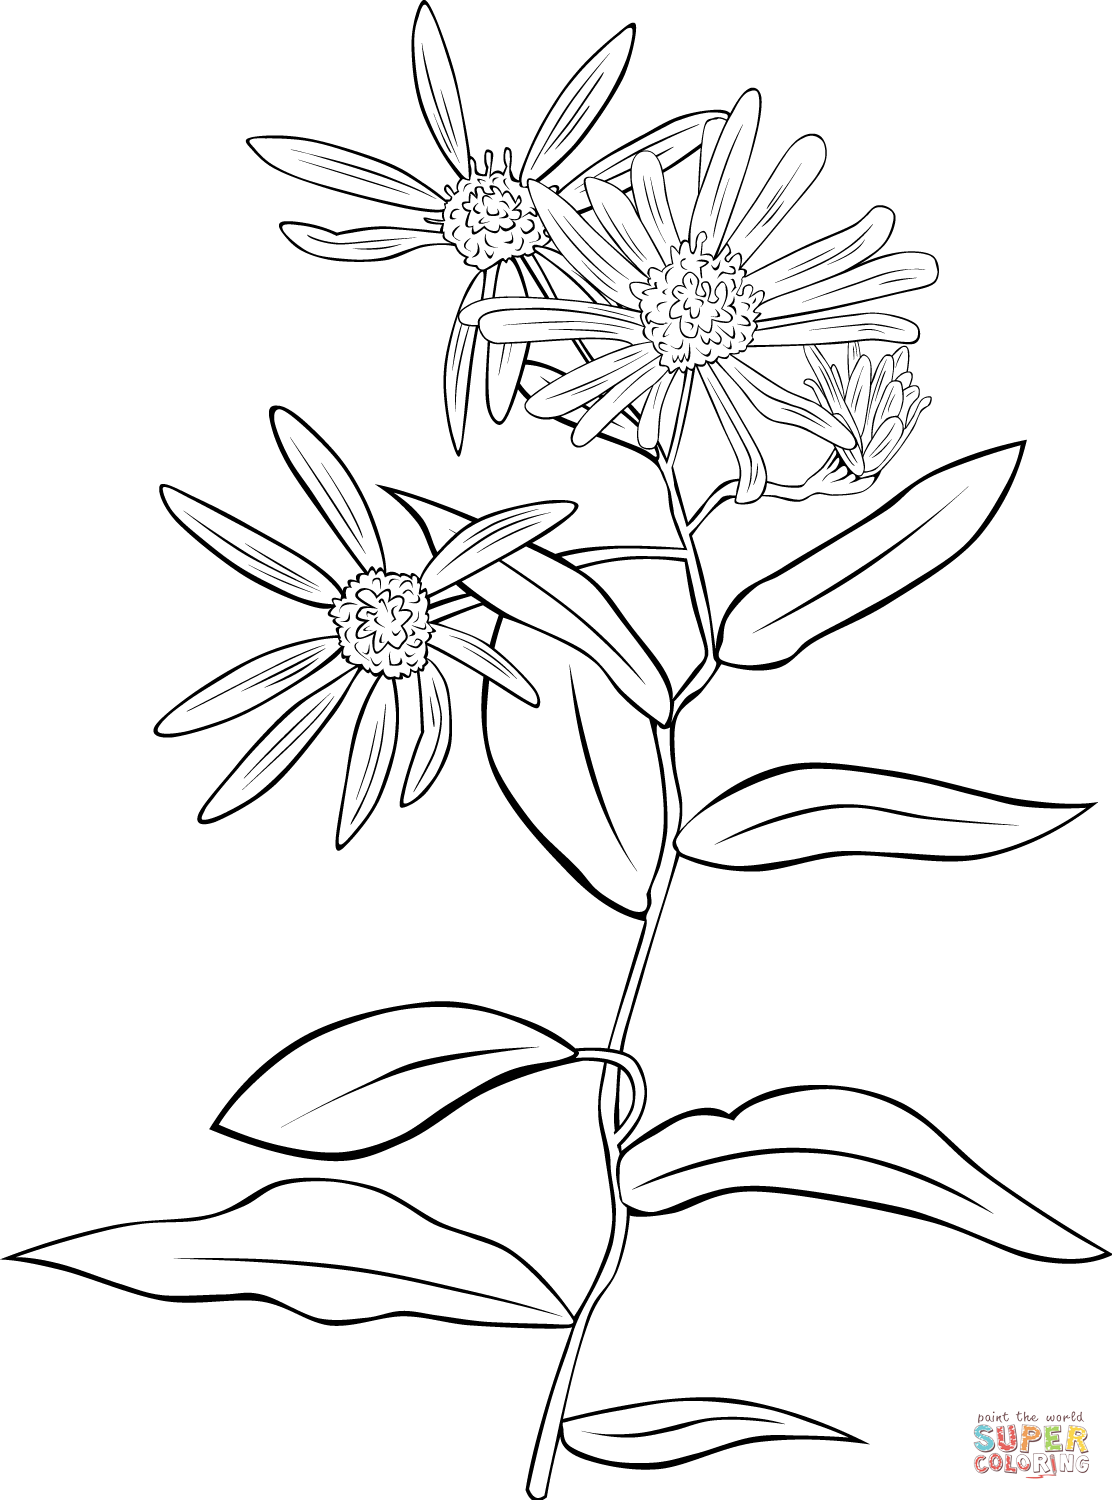 Echinacea coloring #9, Download drawings